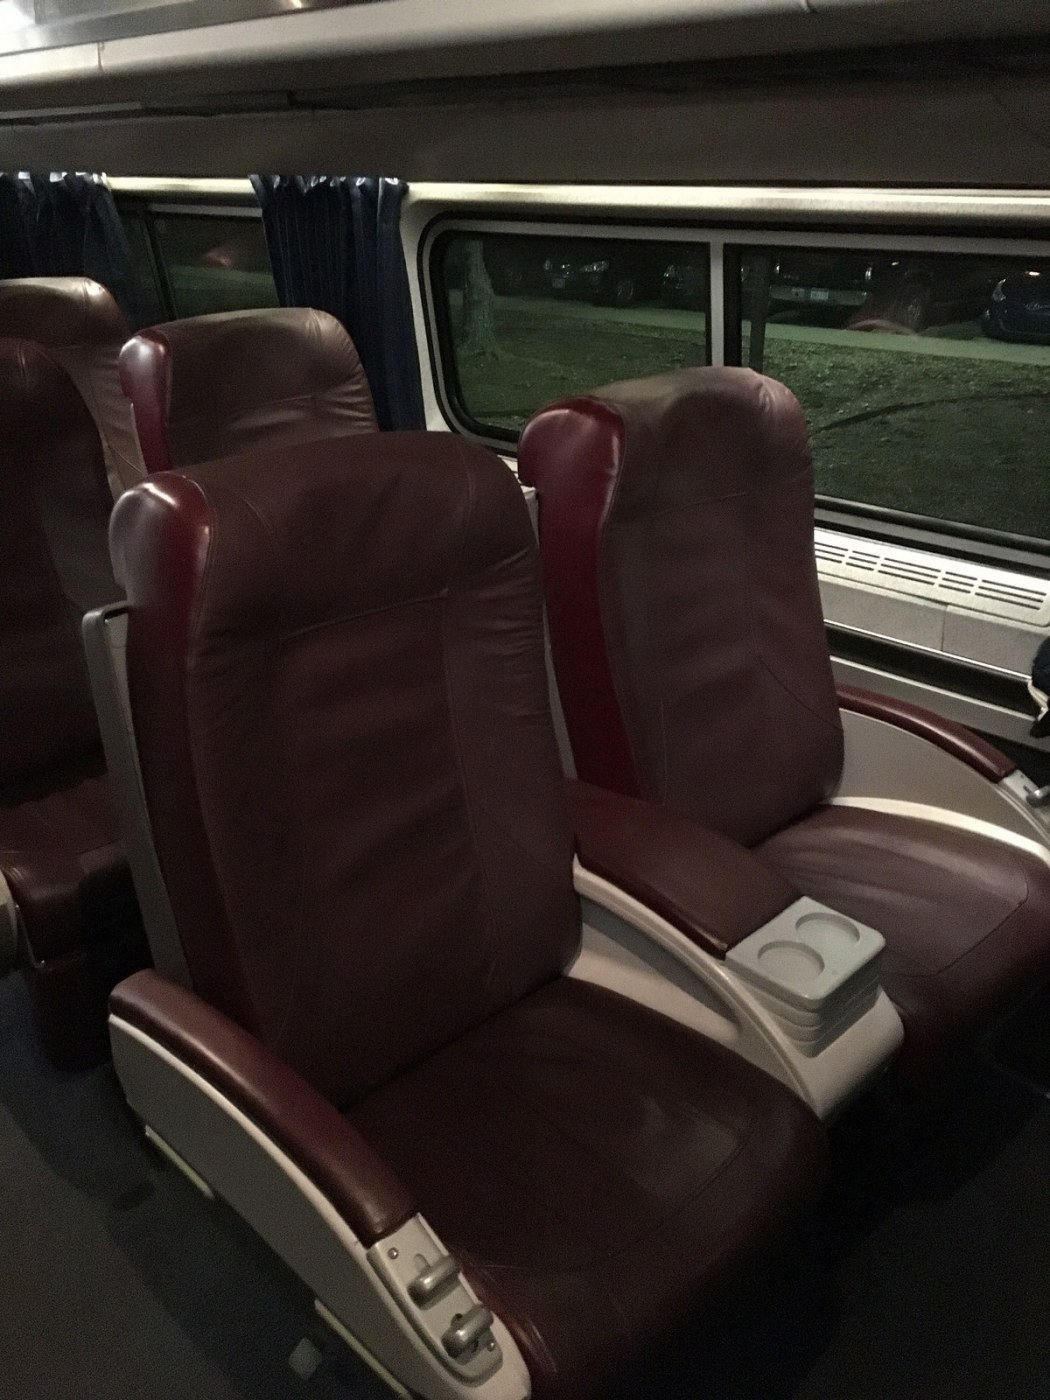 Amtrak Business Class Car